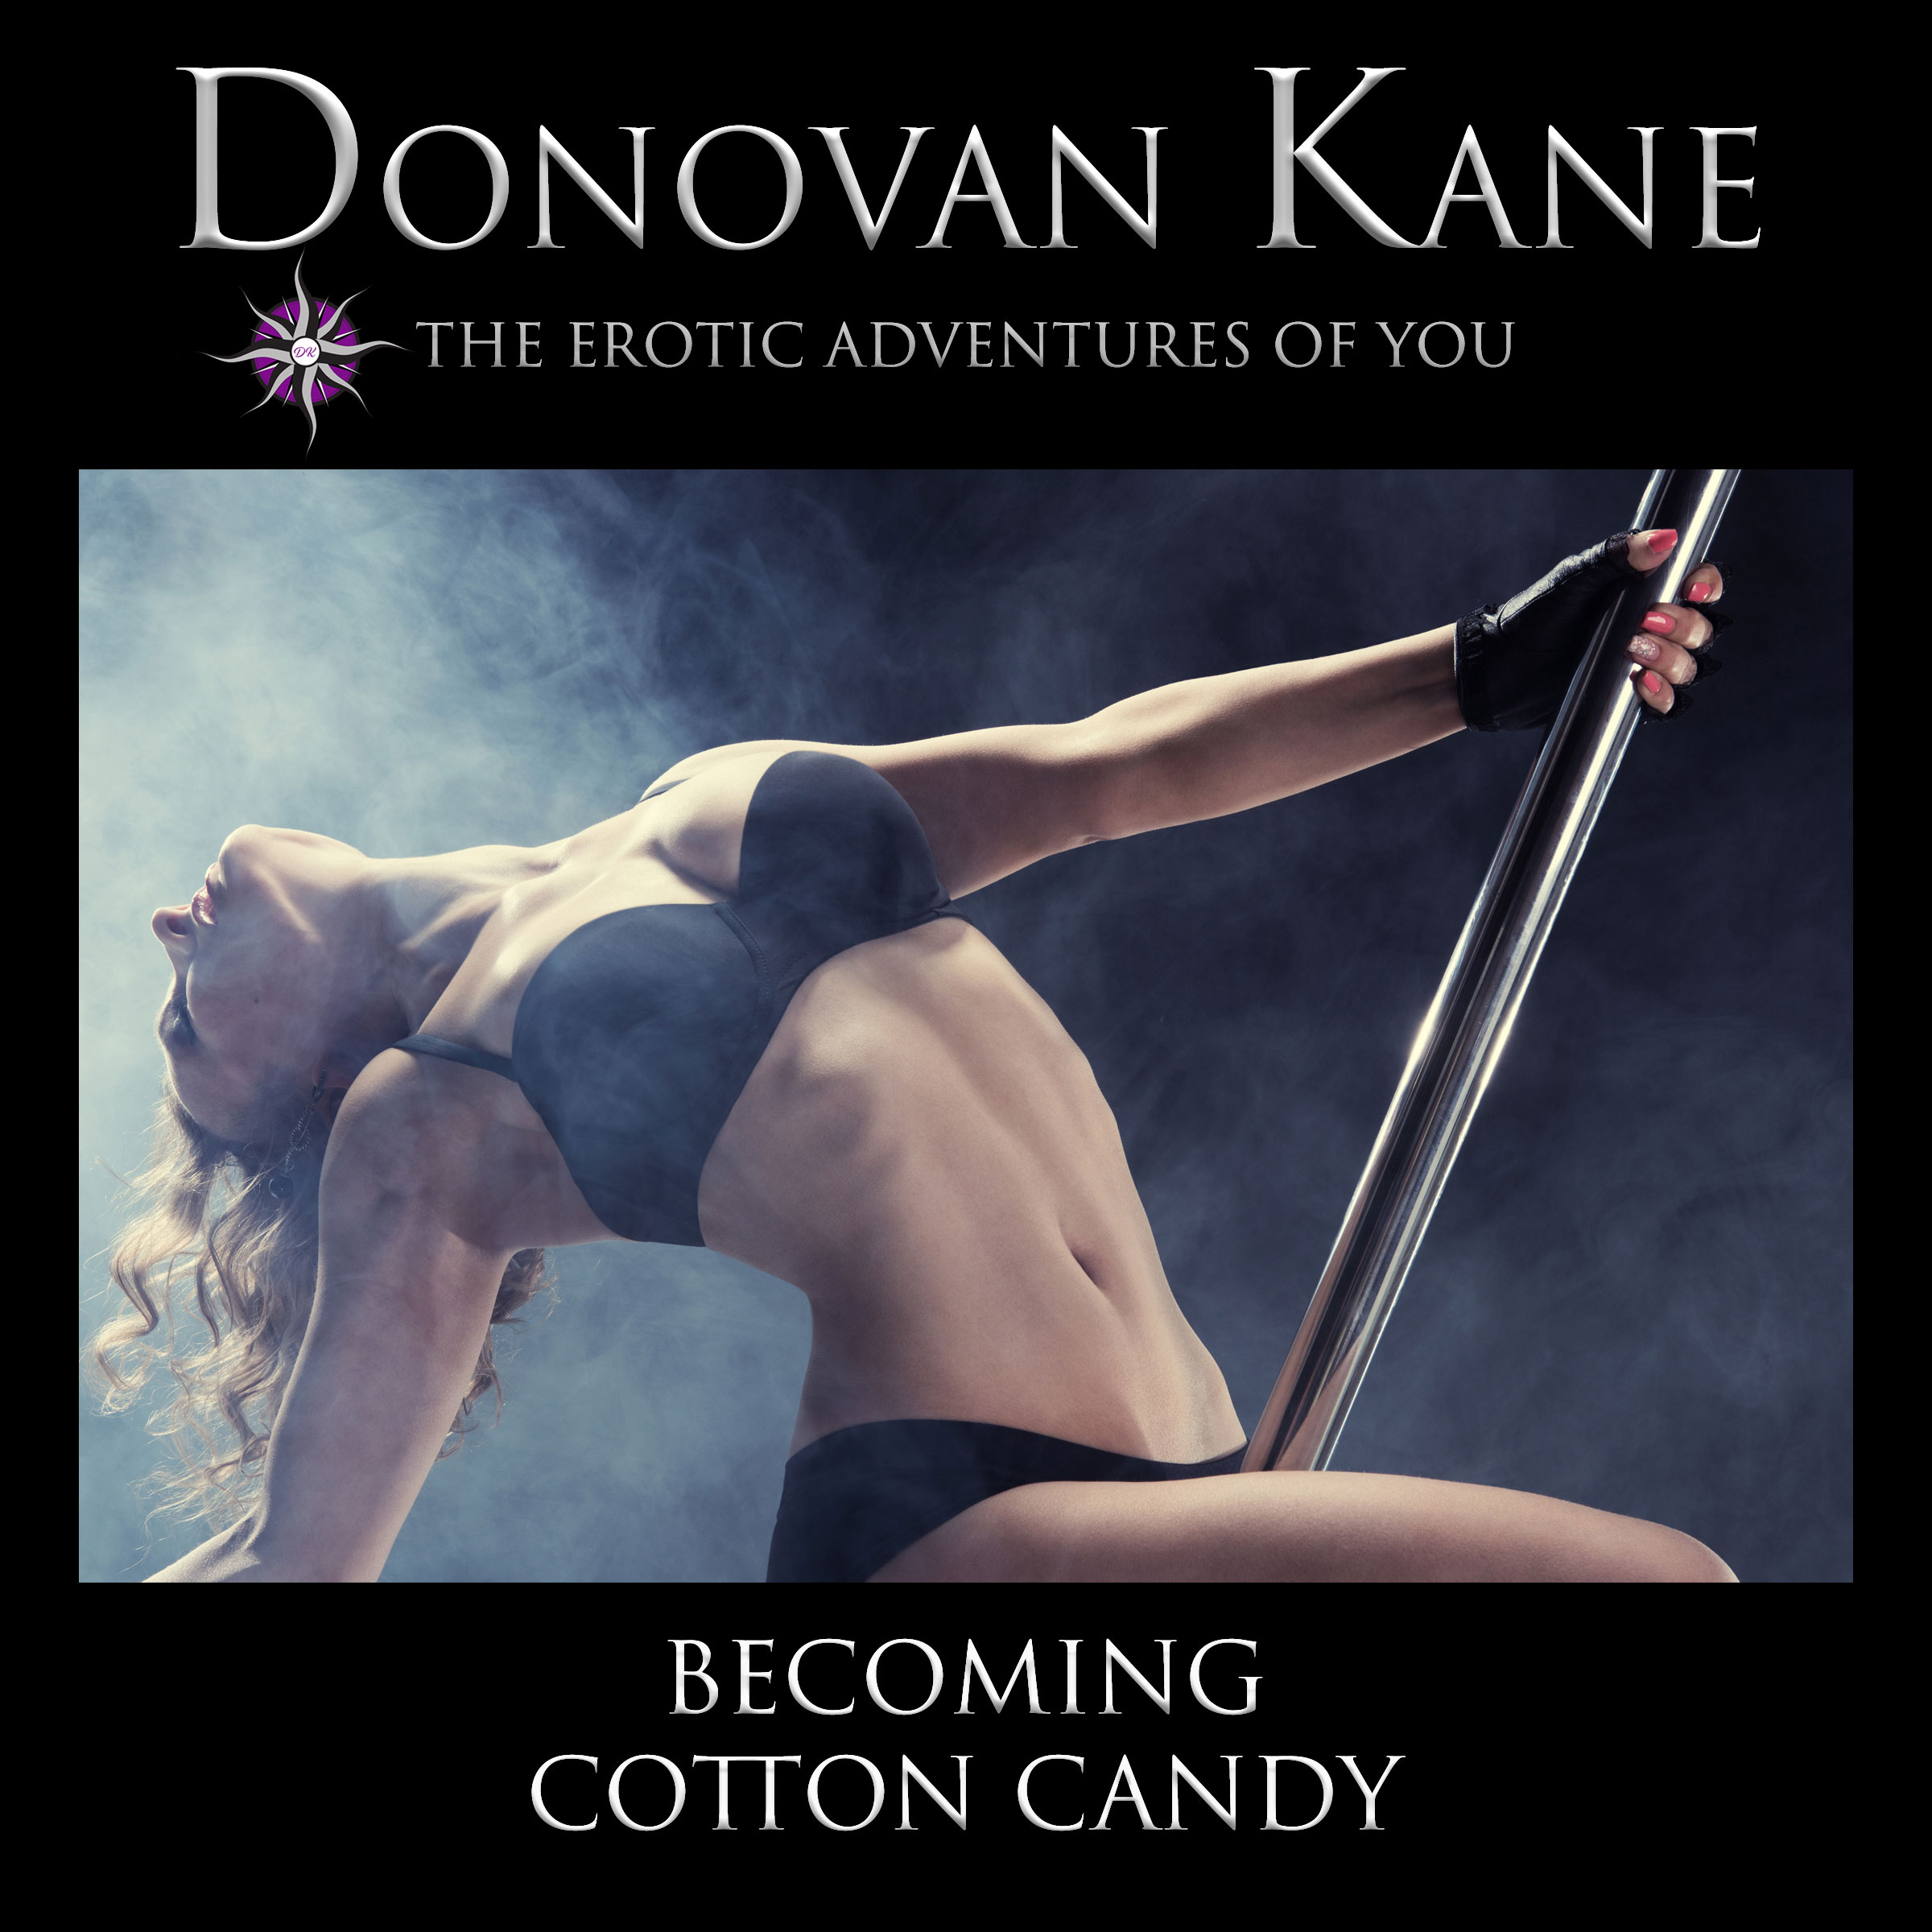 Becoming Cotton Candy: The Erotic Adventures of You